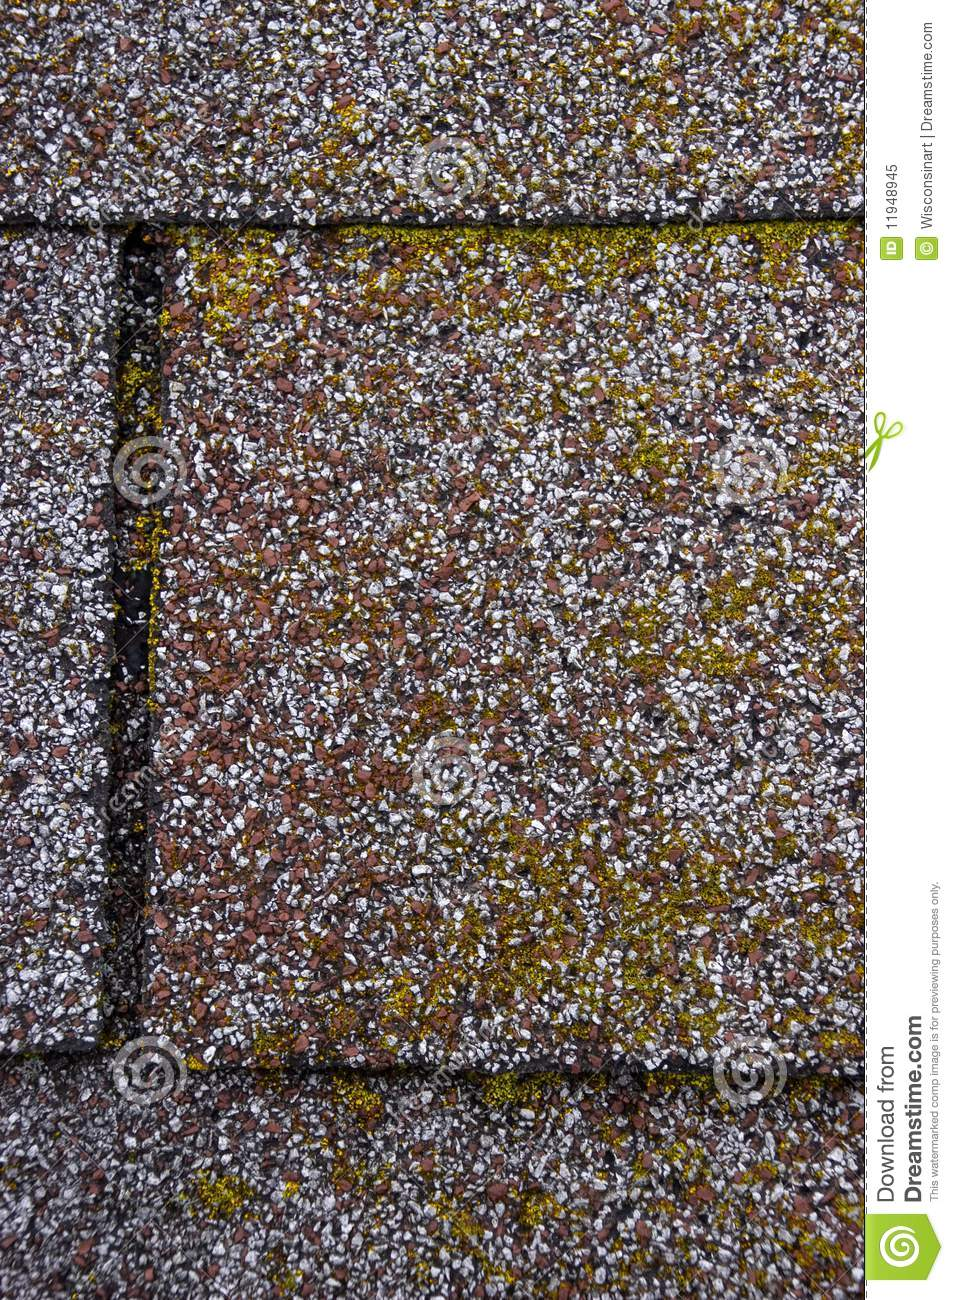 Mold/Moss Damage on House Roof Shingles